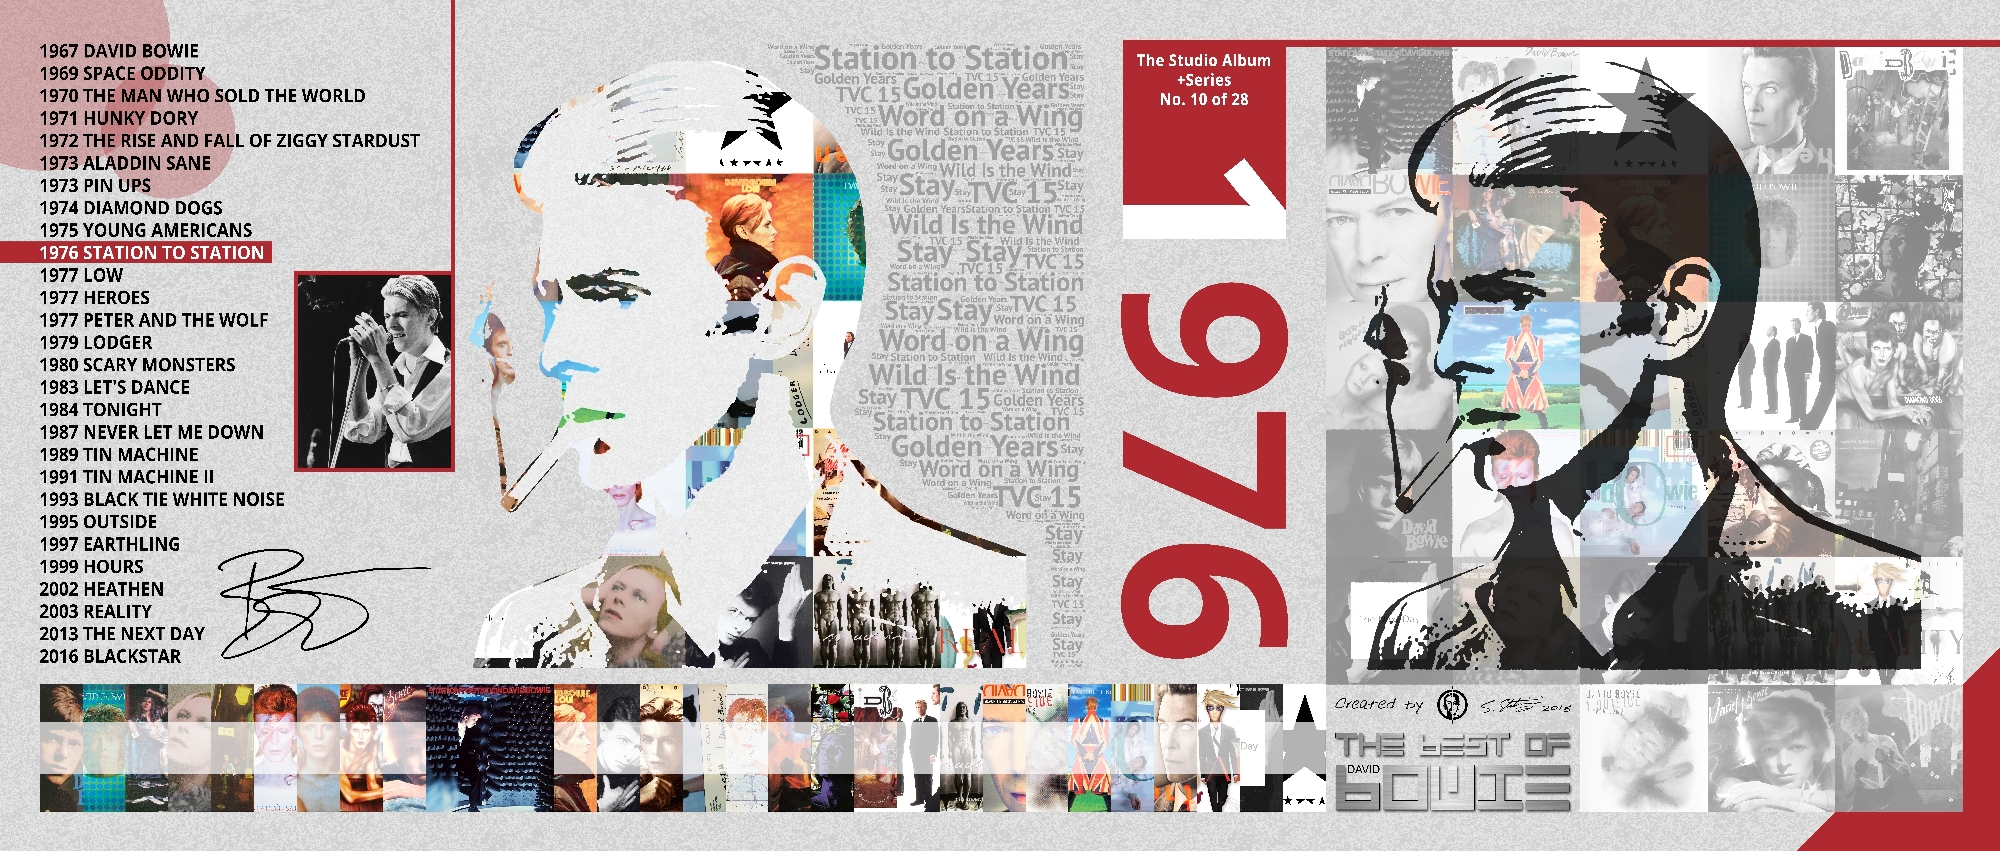 David Bowie Art Creation by Steve Stachini - 1976 Station To Station 162cm x 69cm